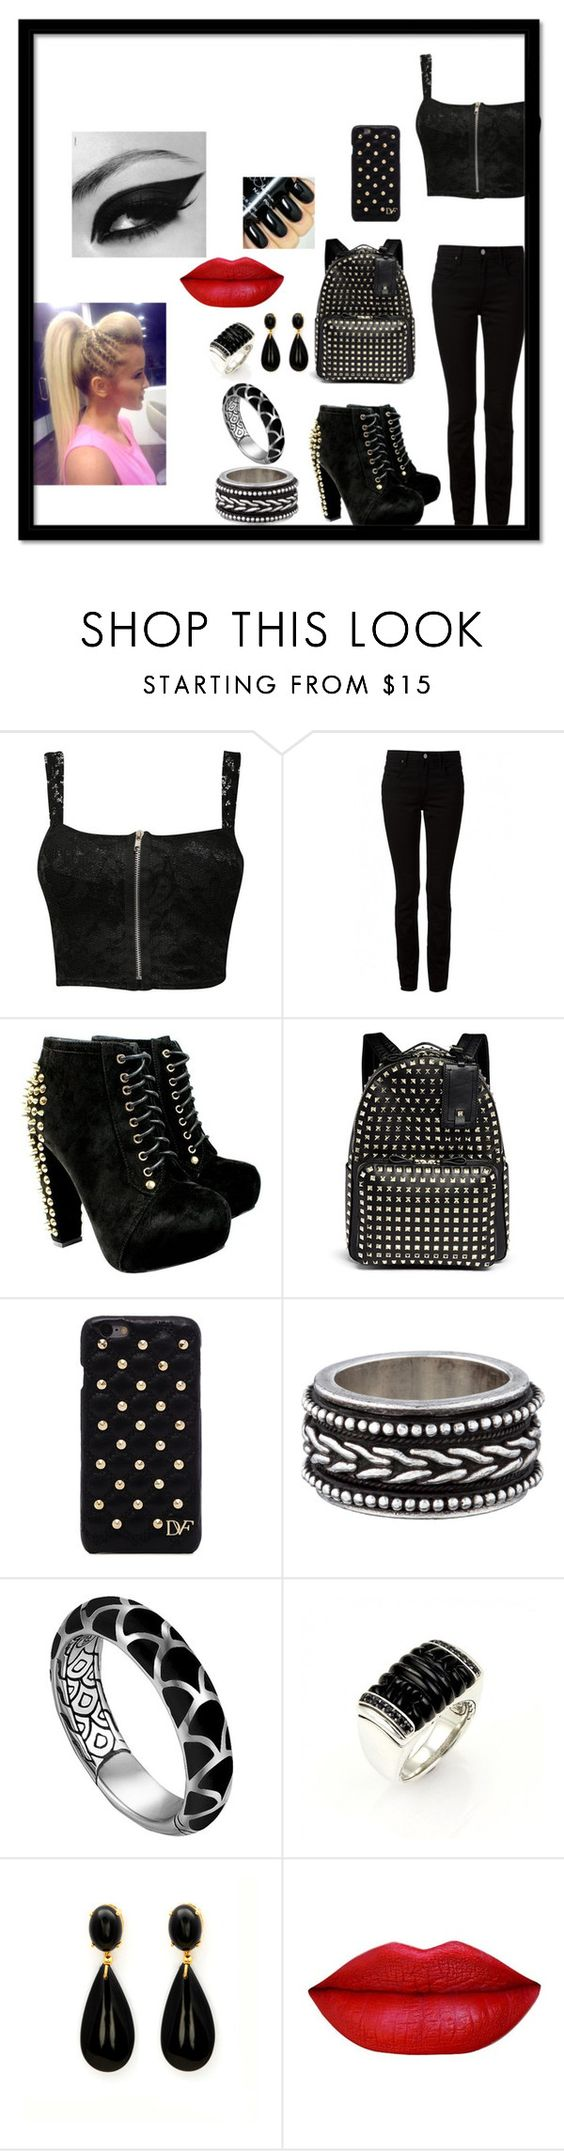 """AMAZING!!!"" by vampire22 ❤ liked on Polyvore featuring beauty, Pilot, T By Alexander Wang, Valentino, Diane Von Furstenberg and John Hardy"